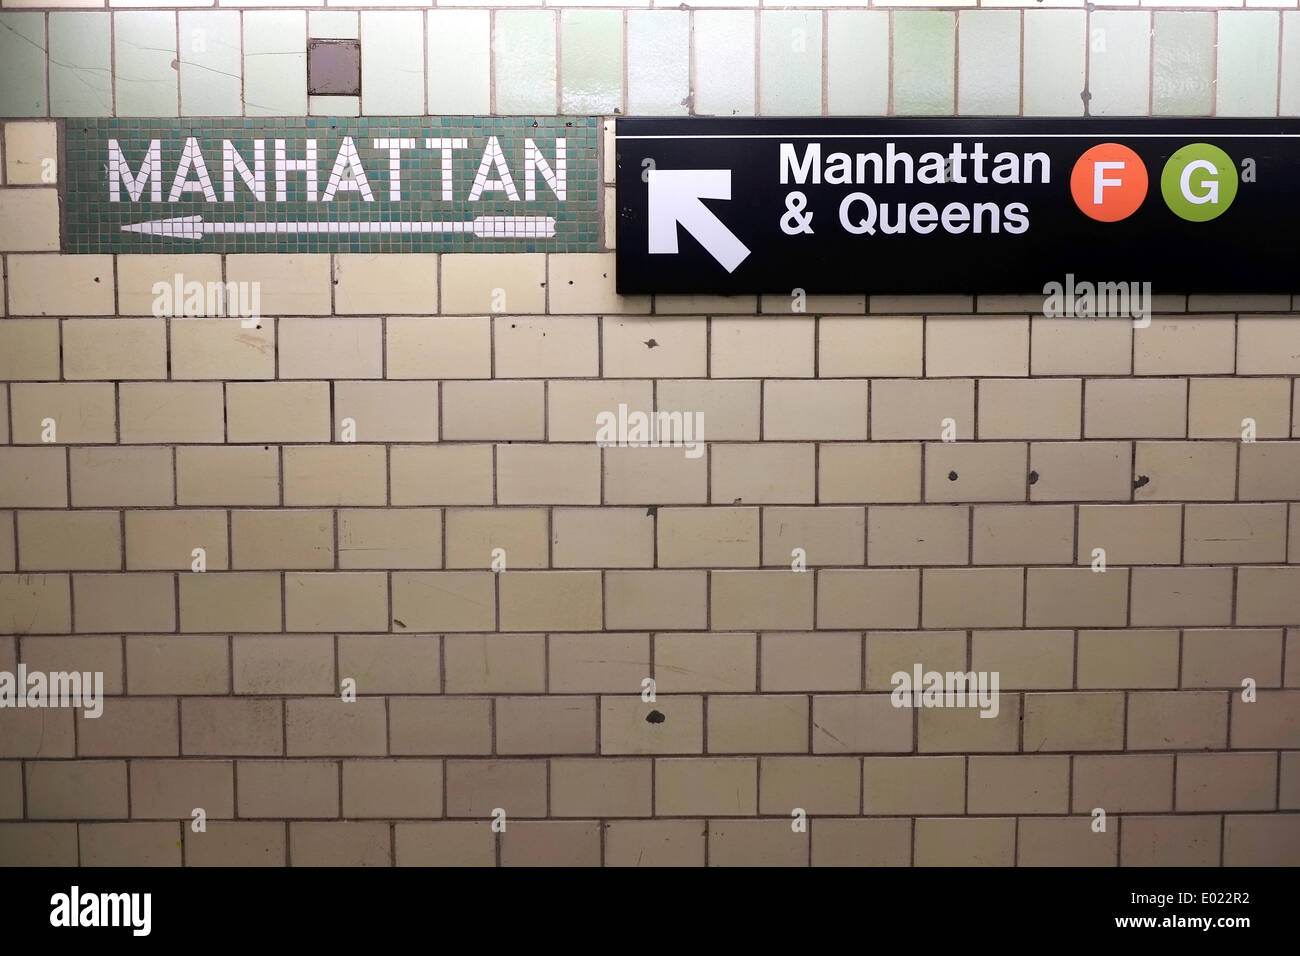 Sings for the Manhattan bound F and G subway lines in New York City. - Stock Image